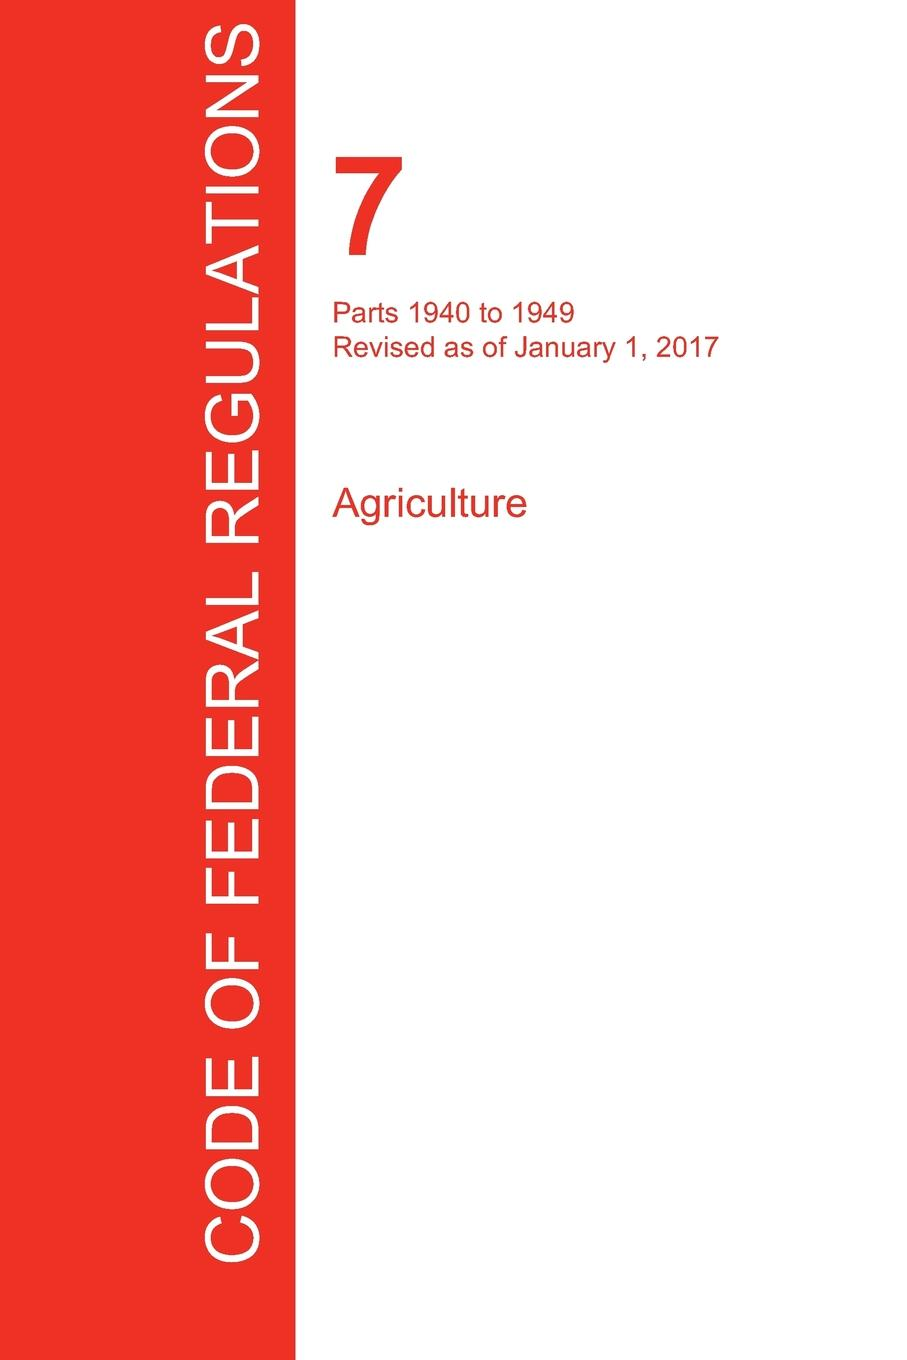 CFR 7, Parts 1940 to 1949, Agriculture, January 01, 2017 (Volume 13 of 15)